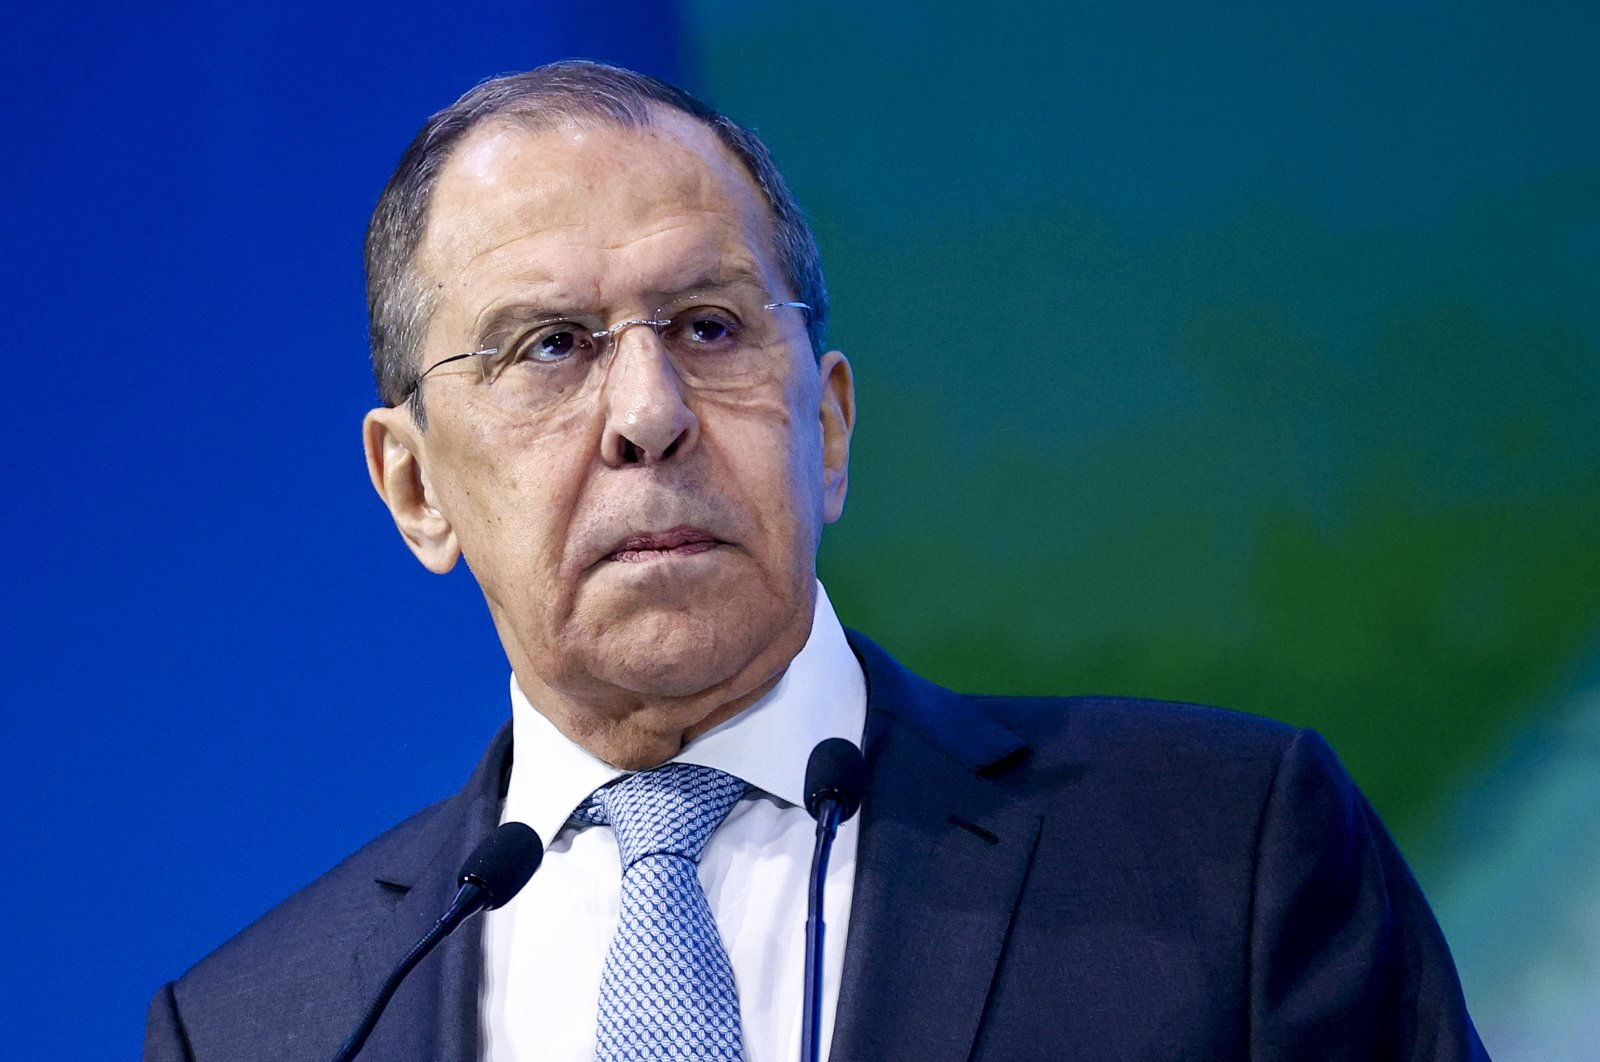 Russian Foreign Minister Sergey Lavrov speaks to participants of an online forum in Moscow, Russia, Friday, May 21, 2021. (Russian Foreign Ministry Press Service via AP)